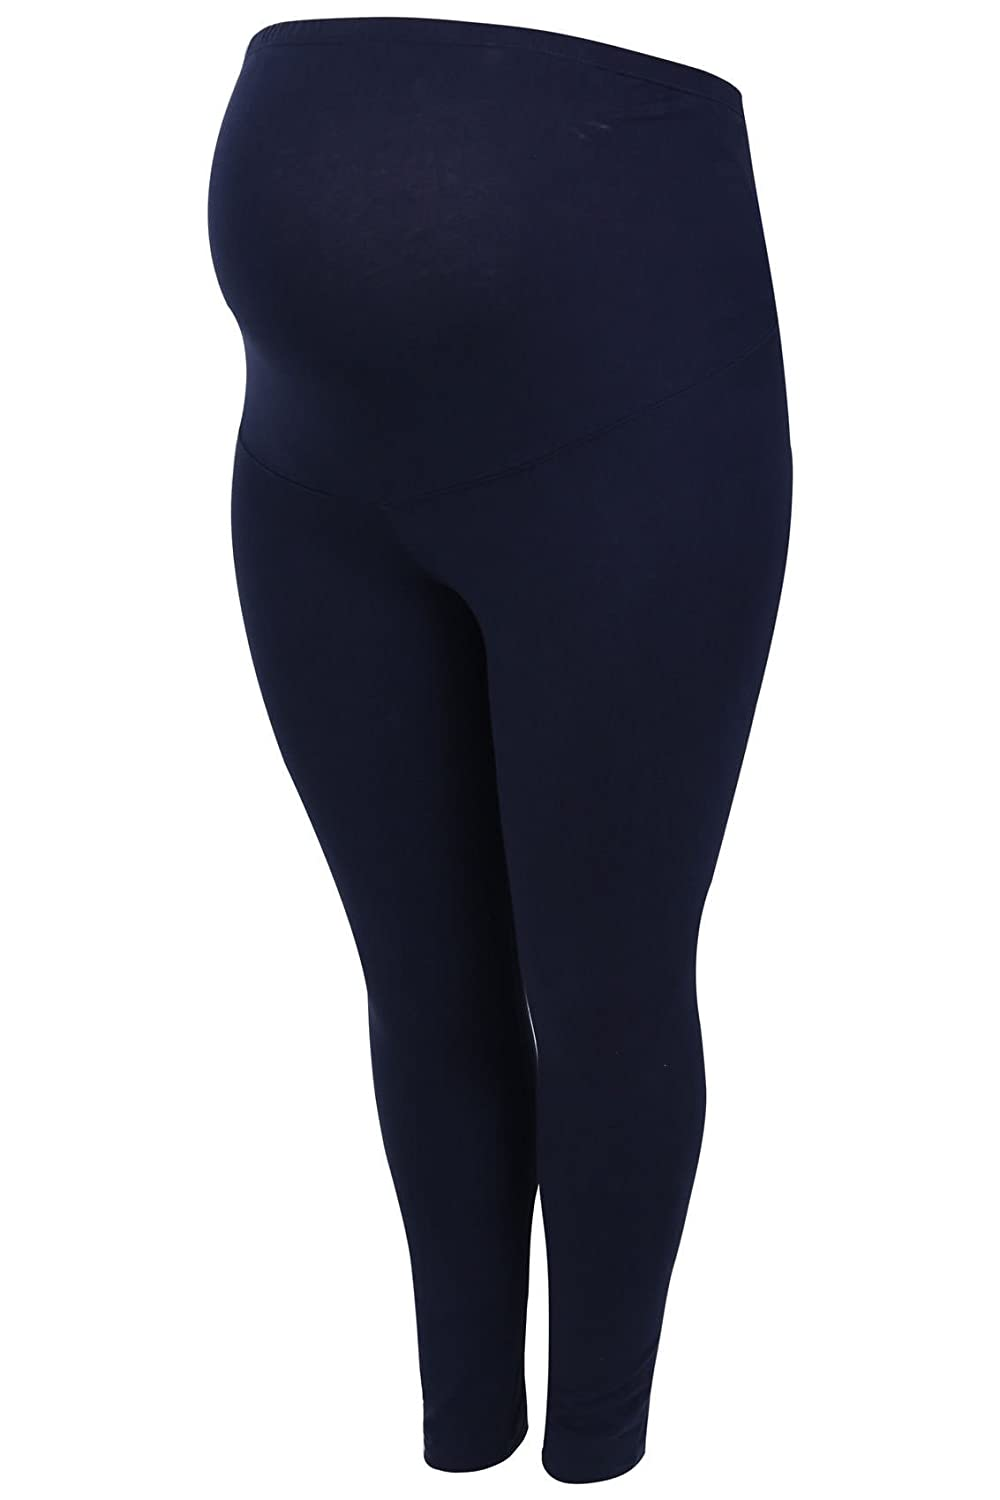 Women's Plus Size Bump It up Maternity Cotton Essential Leggings with Comfort Pa